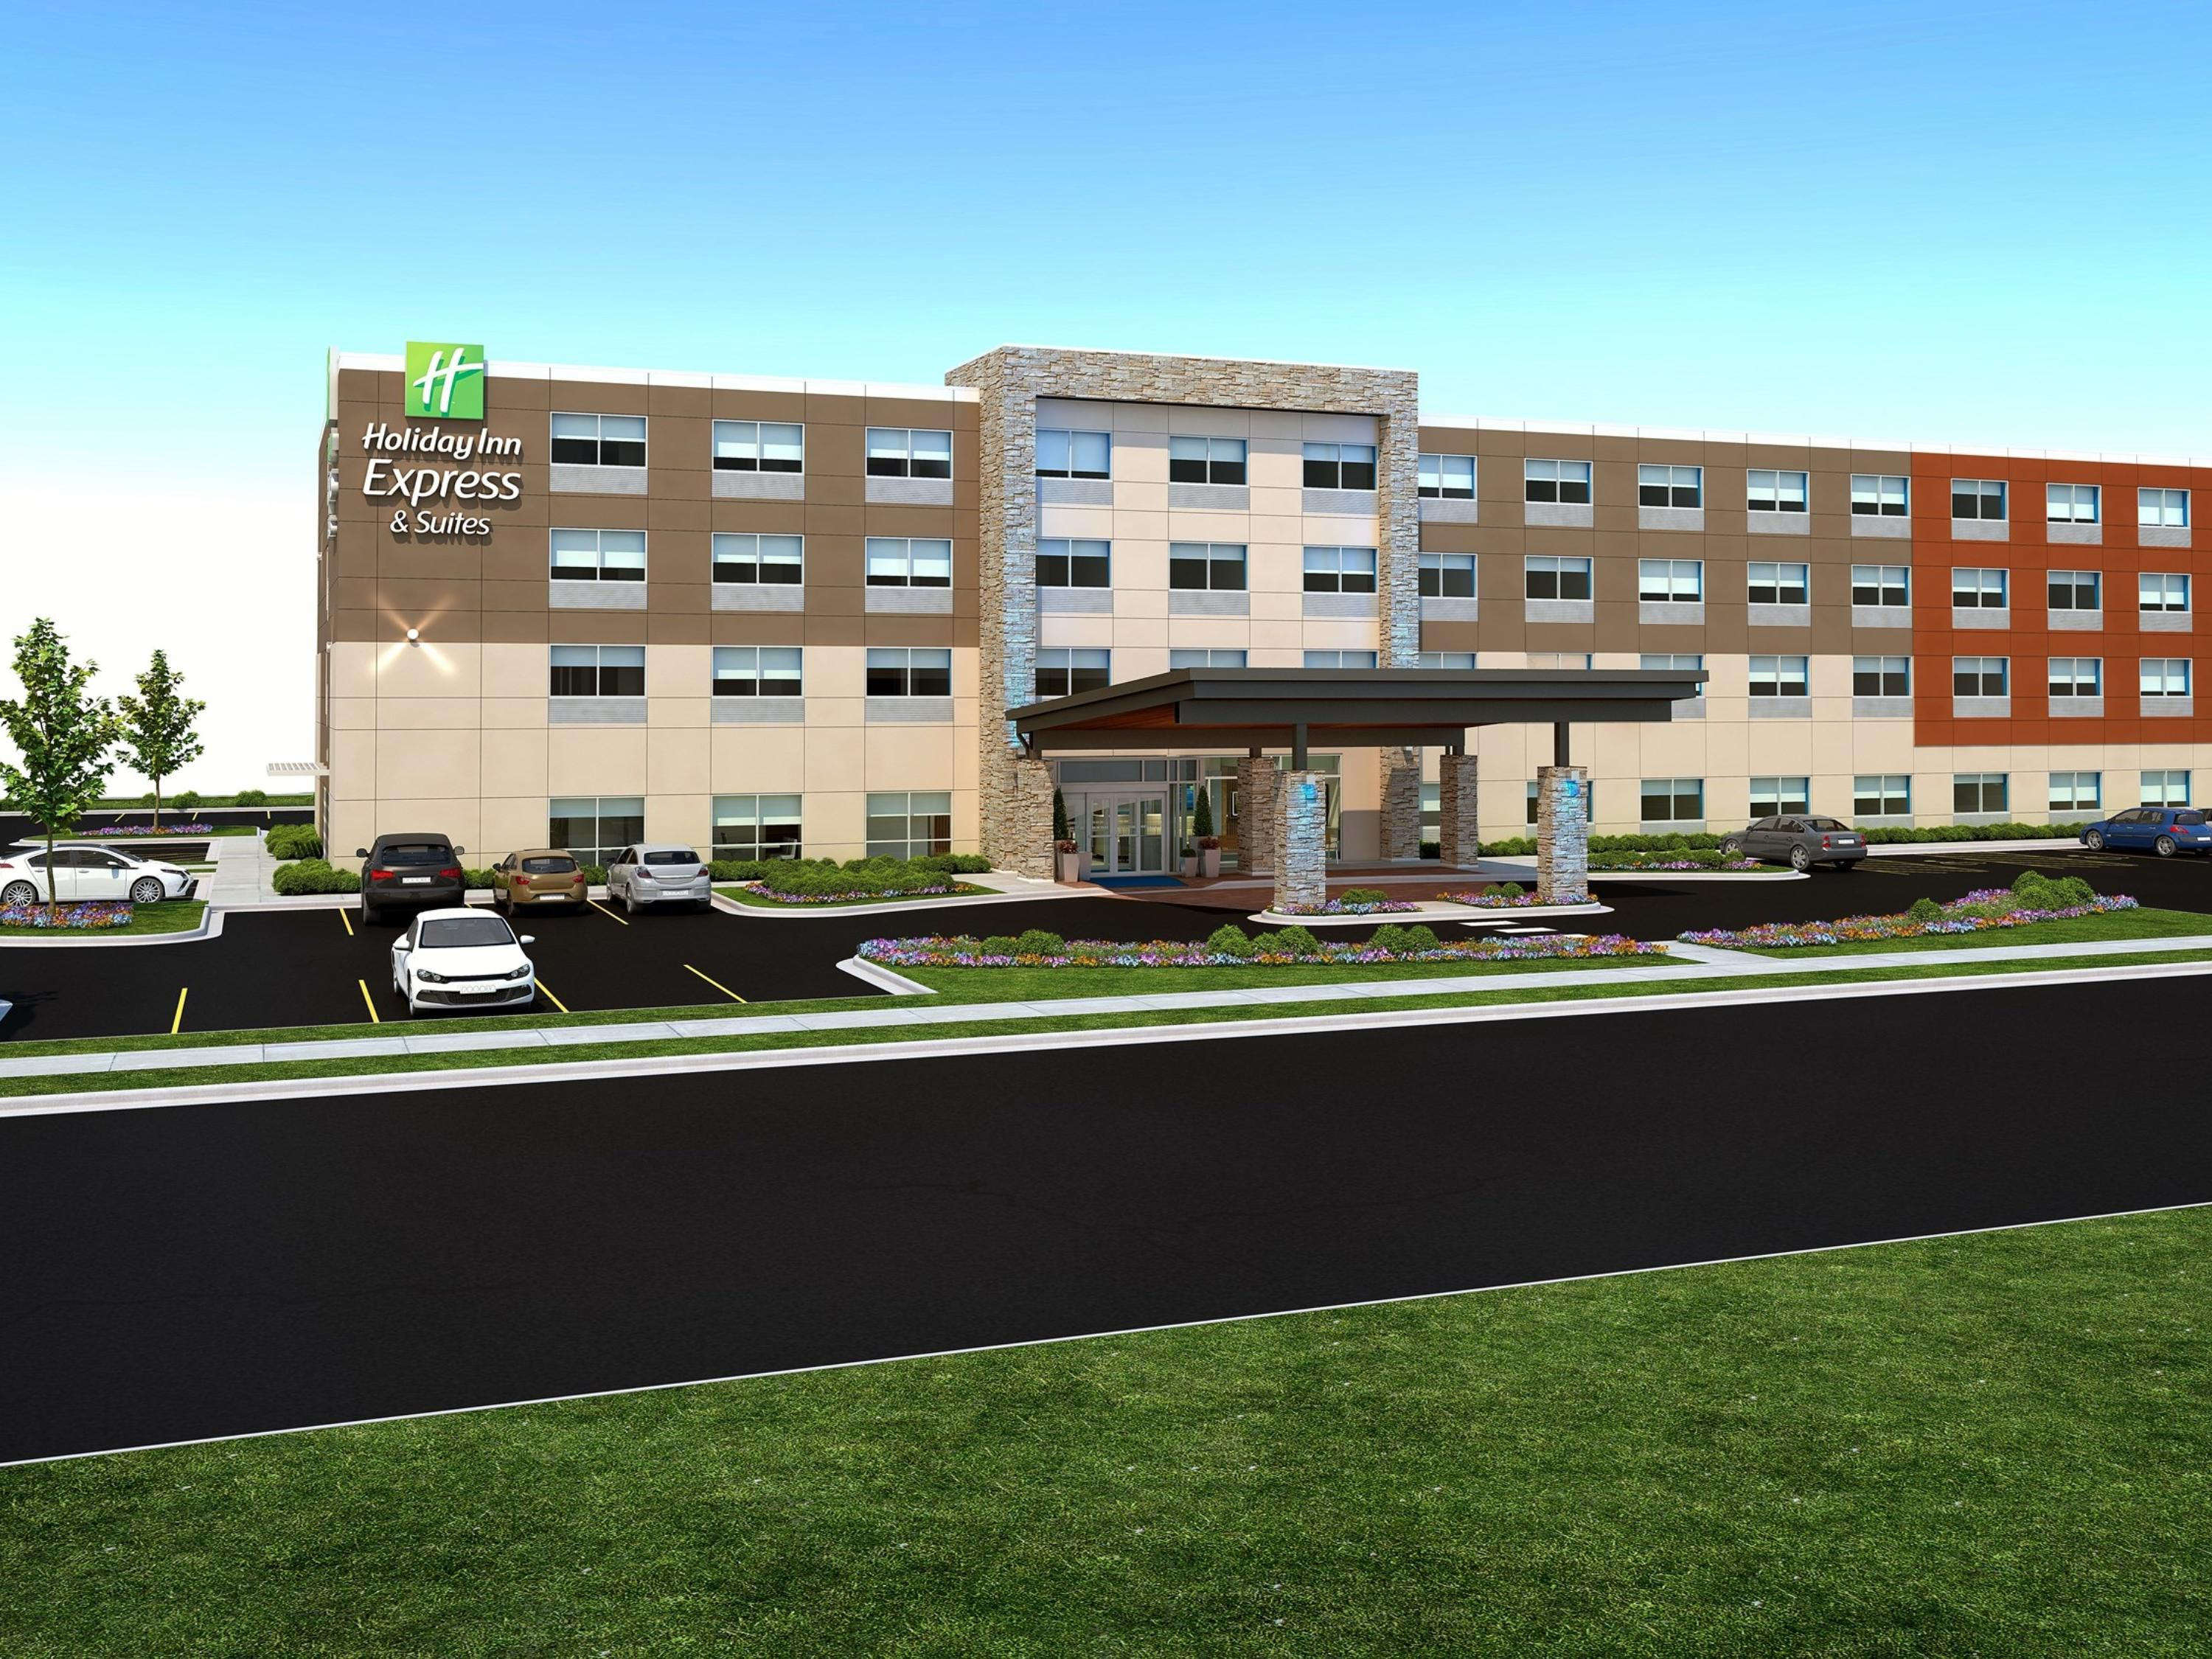 Holiday Inn Express Suites Omaha 120th And Maple Hotel By Ihg